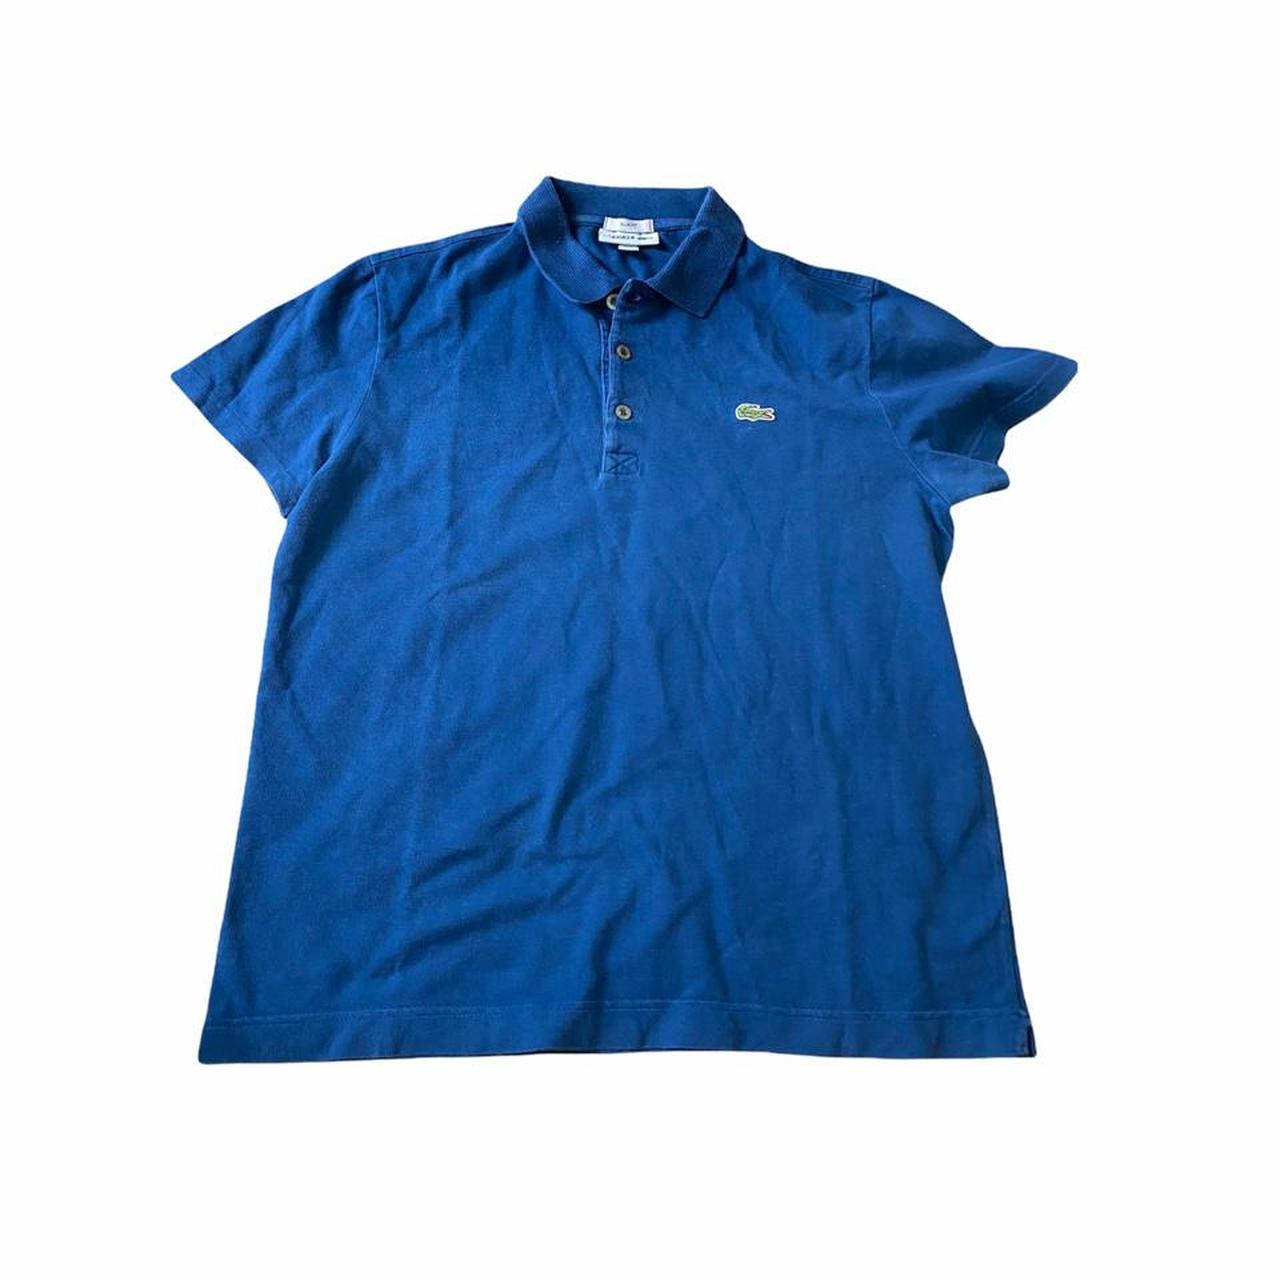 Product Image 1 - Lacoste navy blue polo collared